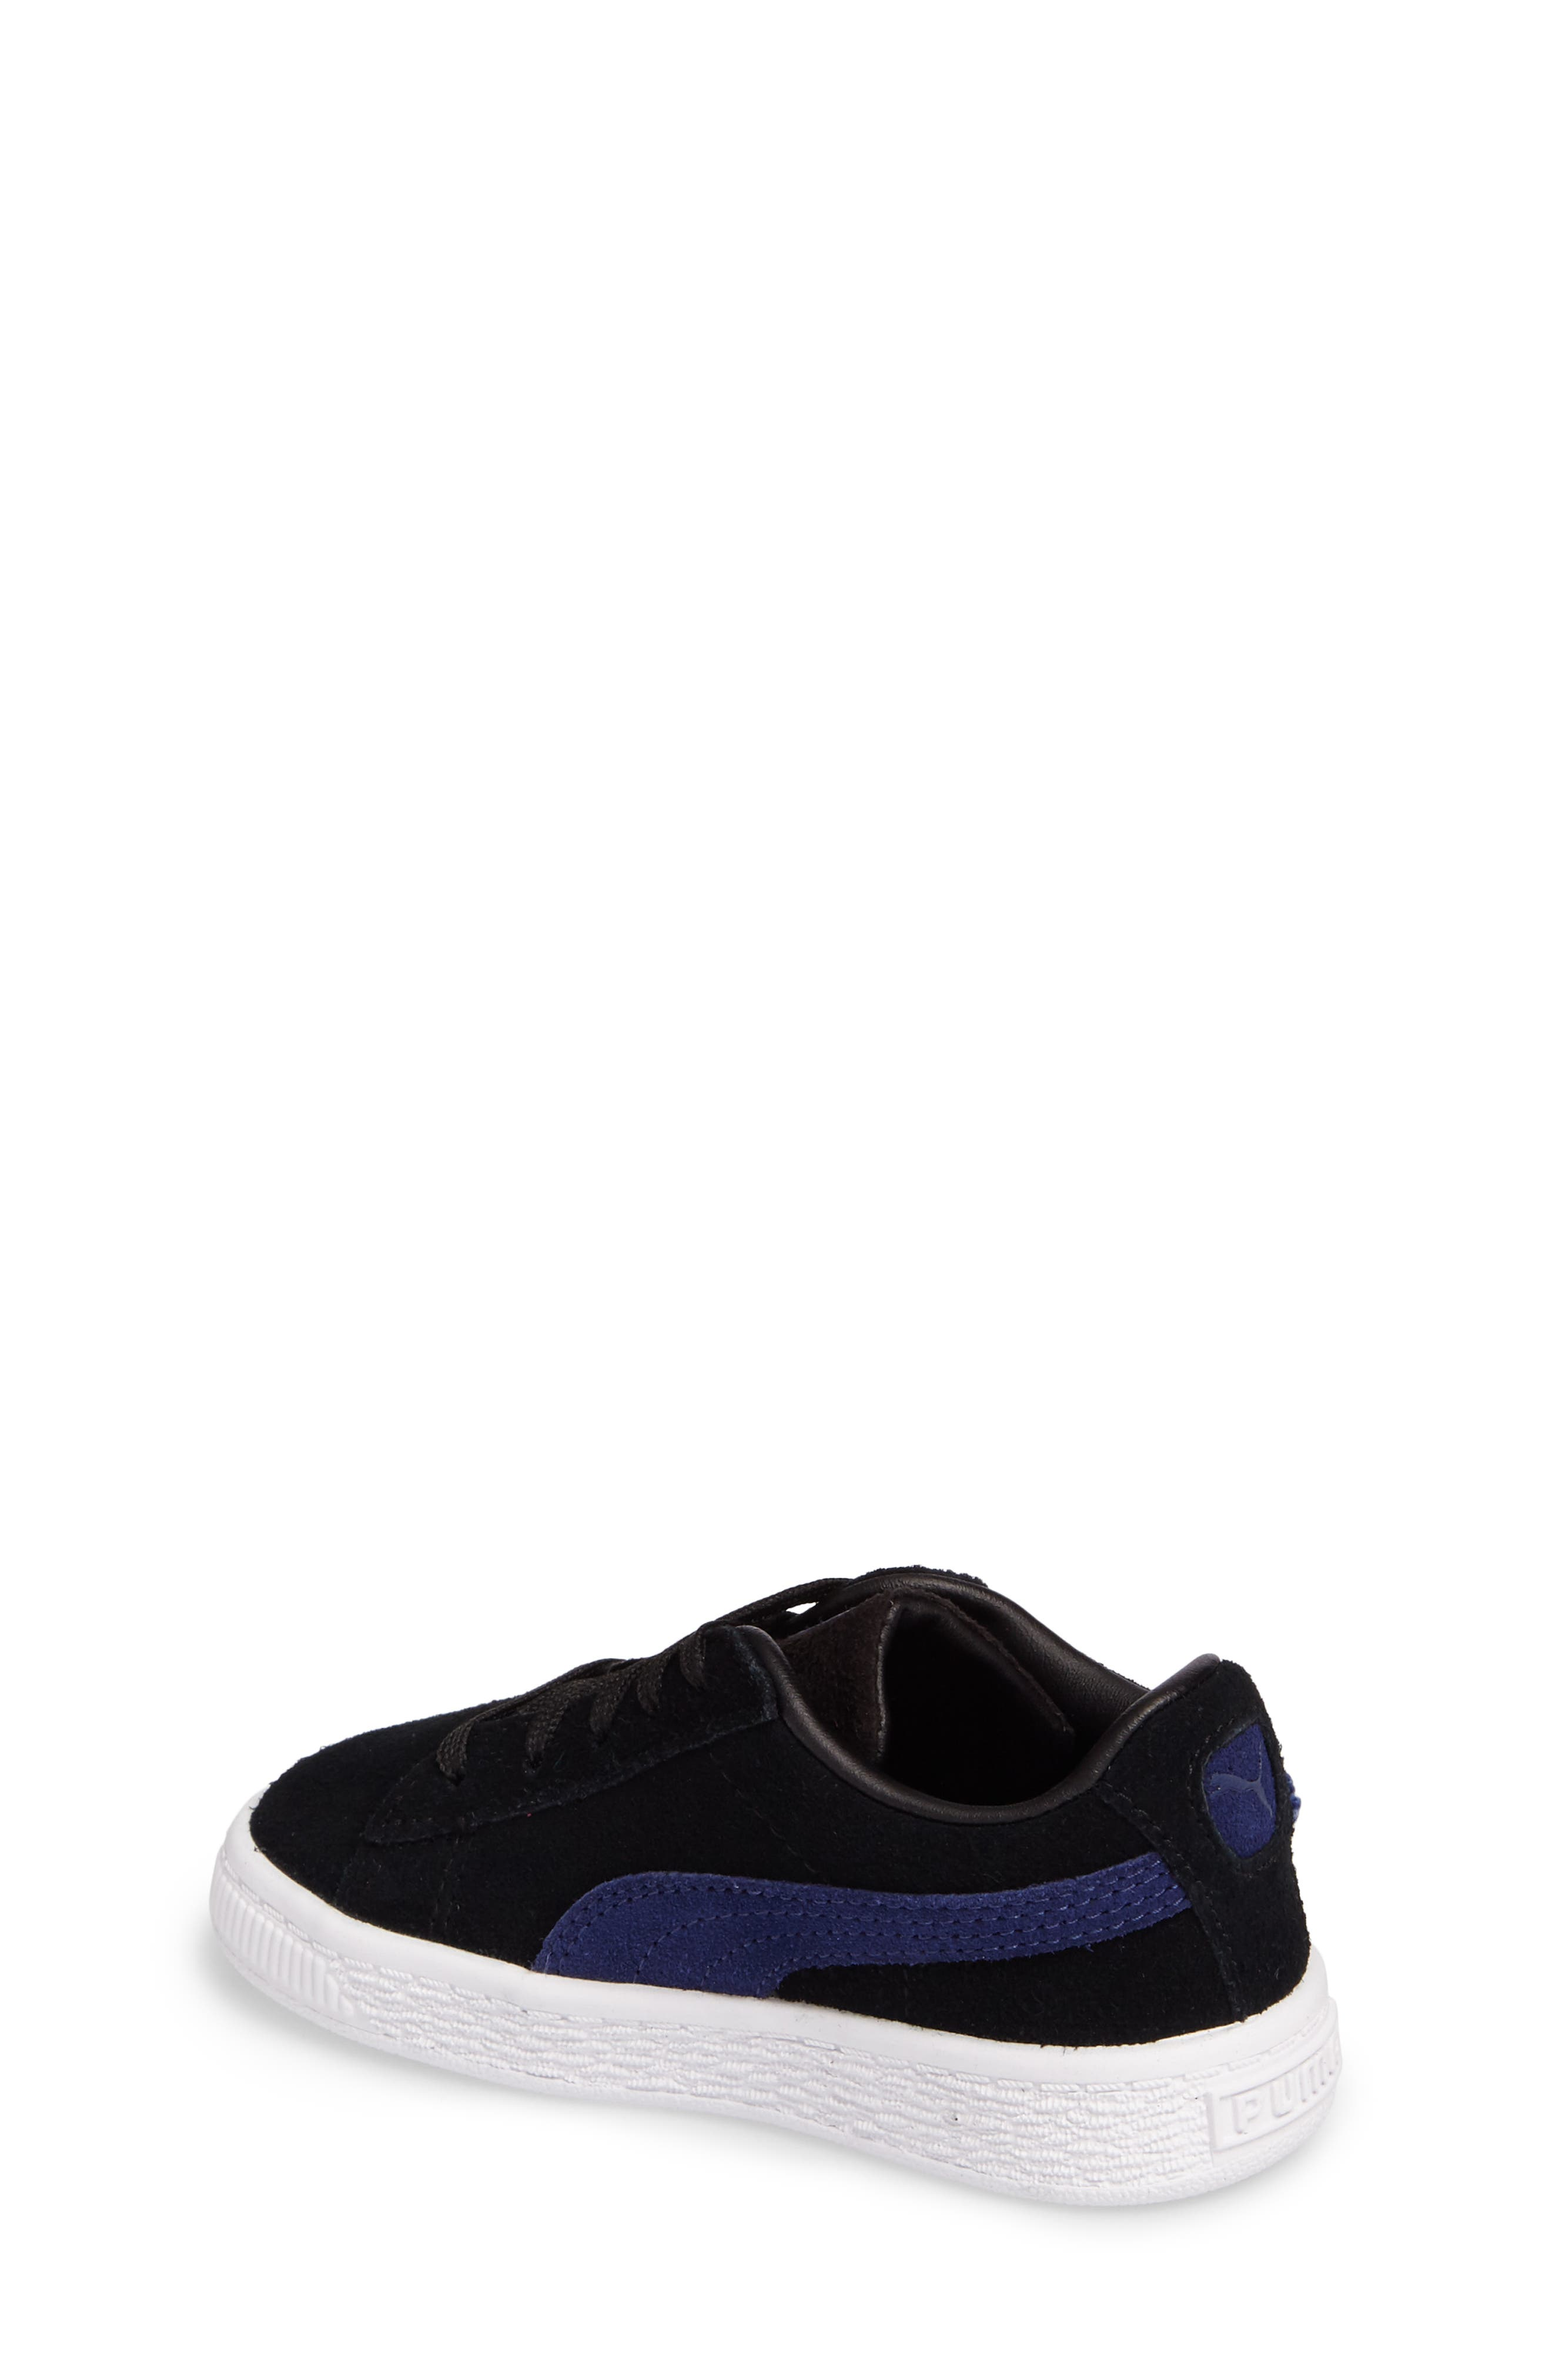 Classic Terry Sneaker,                             Alternate thumbnail 2, color,                             001